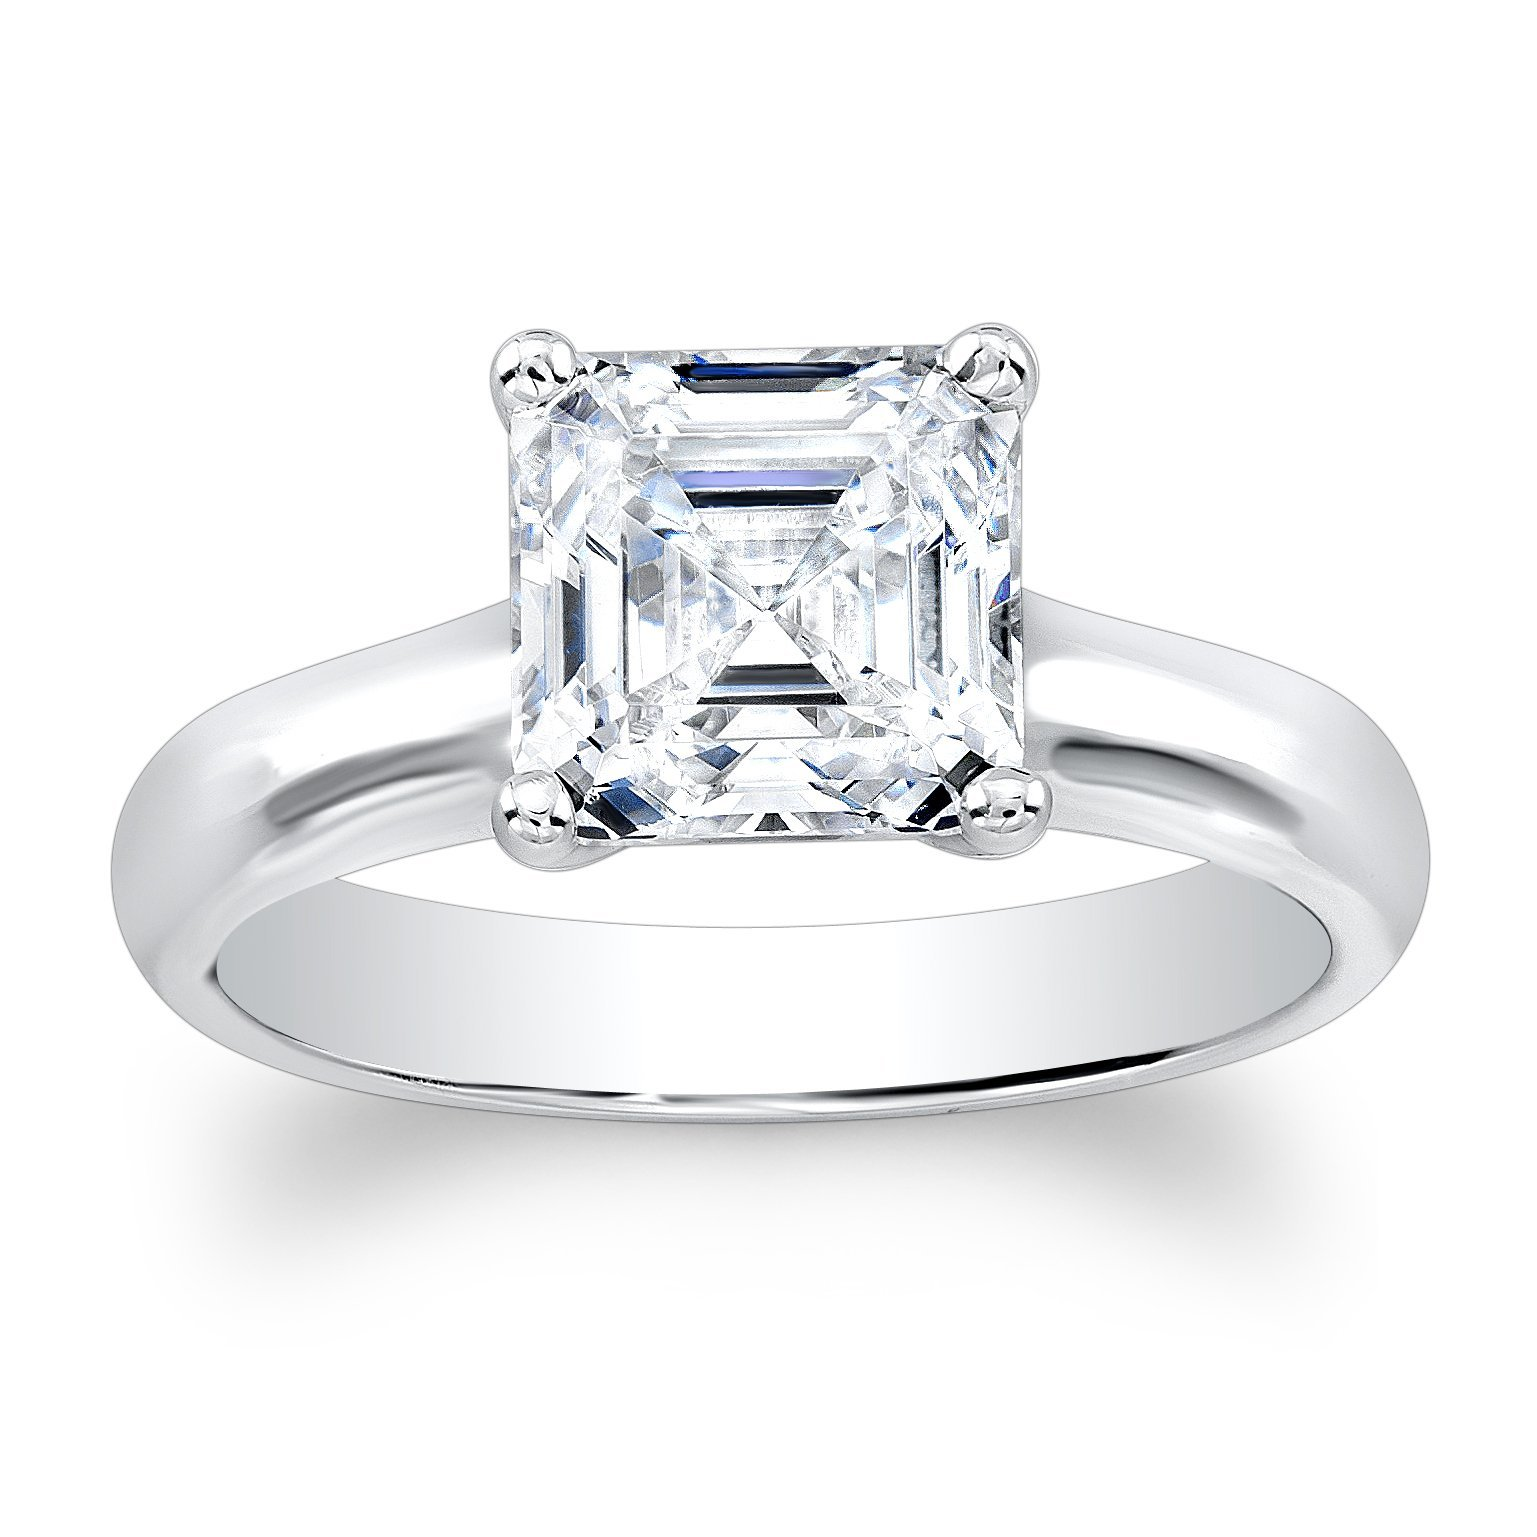 Ladies 14k white gold plain solitaire engagement ring with natural 2ct Asscher Cut White Sapphire center gemstone